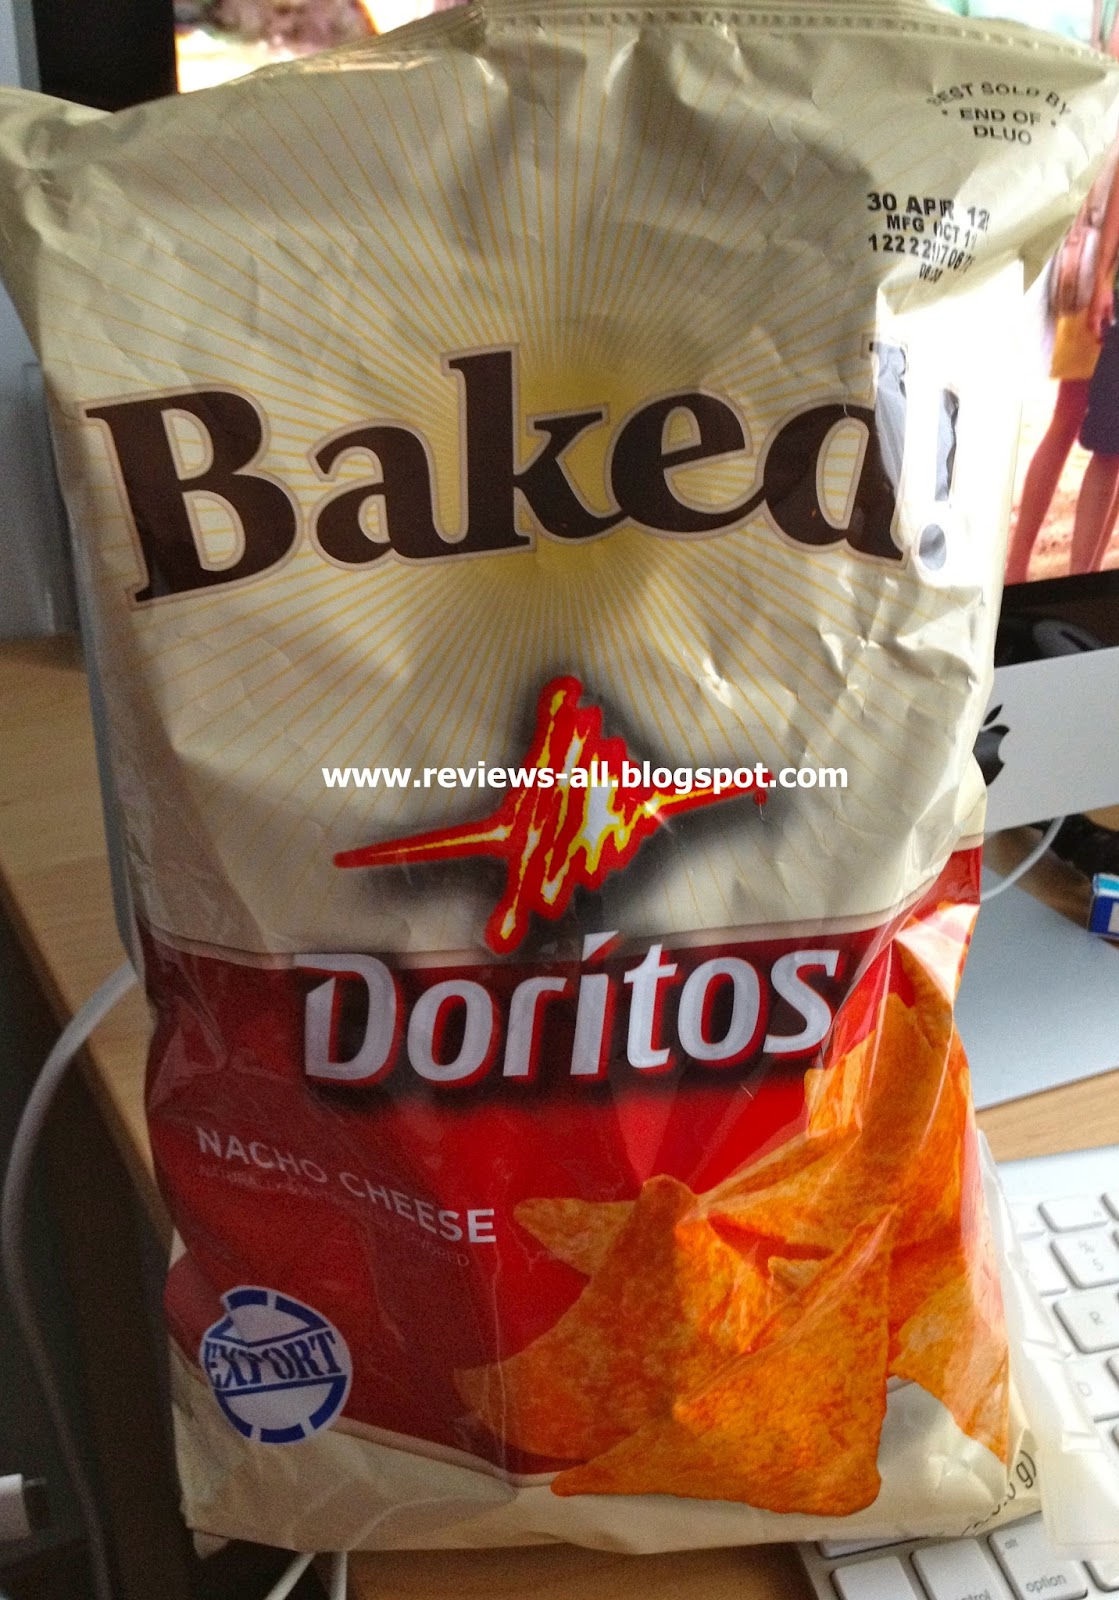 we'll tell you - a&w couple's blog: baked doritos - nacho cheese